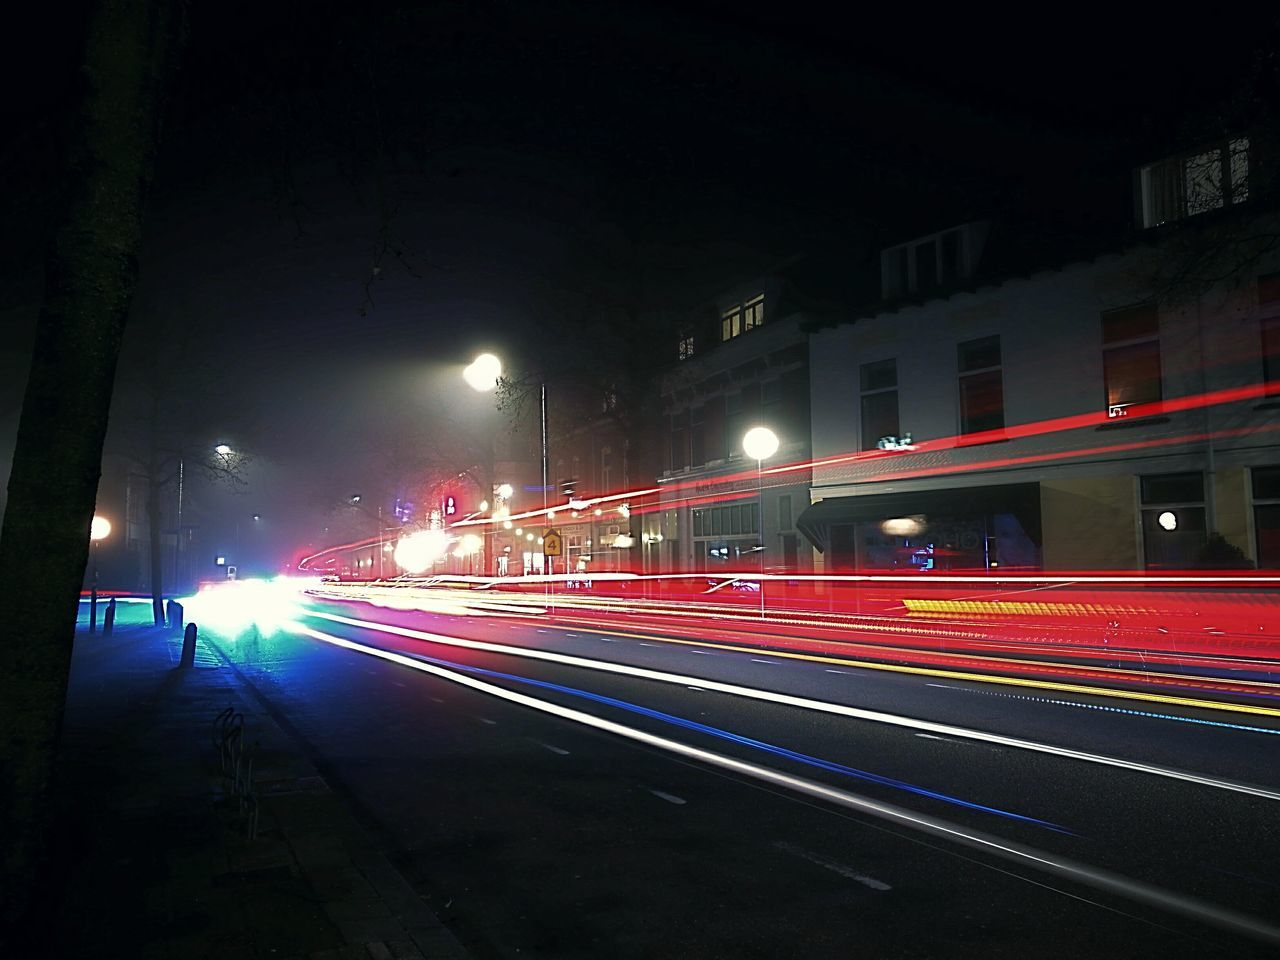 Night Illuminated City Speed City Life Outdoors Scenics Red Light In The Darkness Light Traces